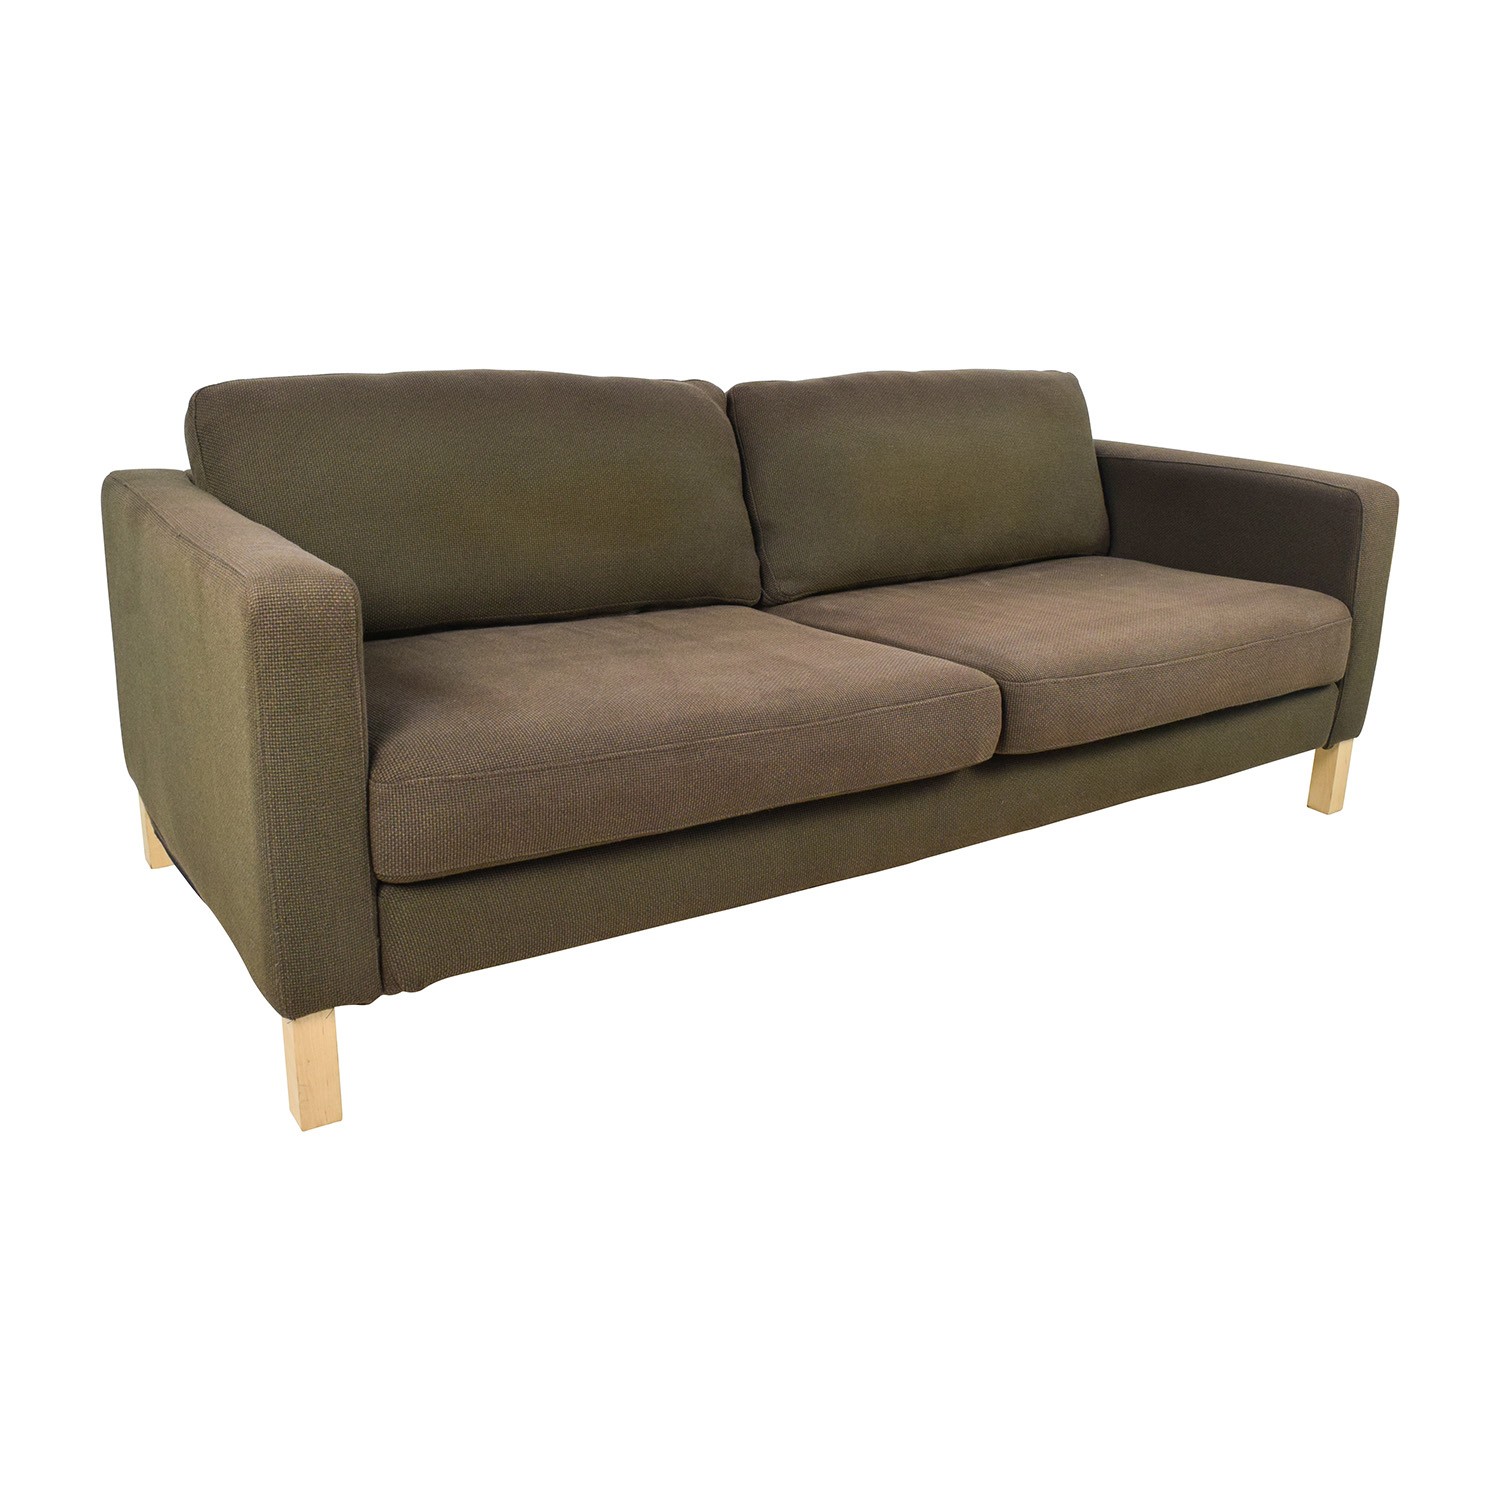 Kleine couch ikea 25 best ideas about ikea sofa bed on for Ecksofa ebay kleinanzeigen